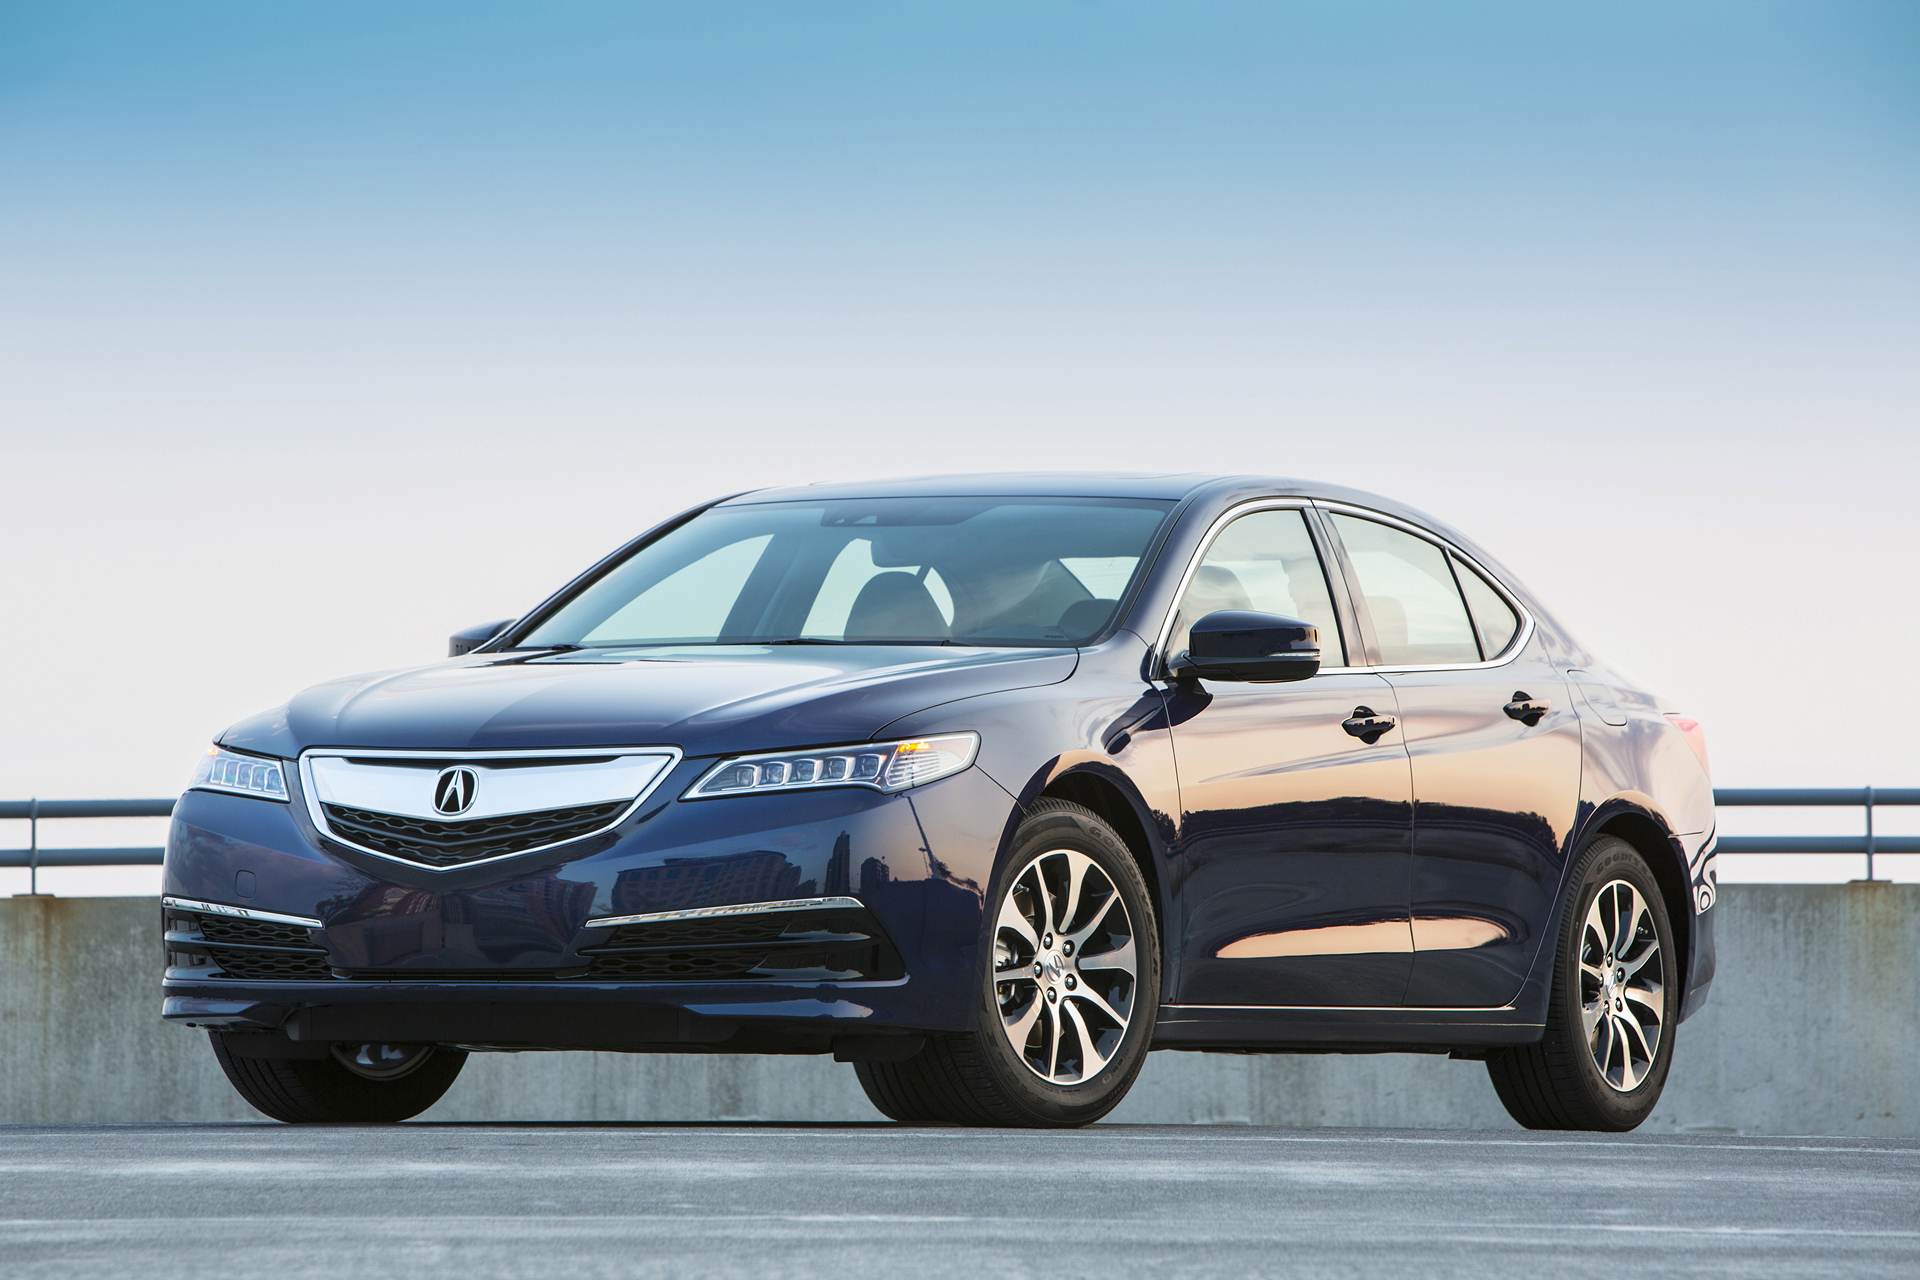 2017 Acura TLX © Honda Motor Co., Ltd.